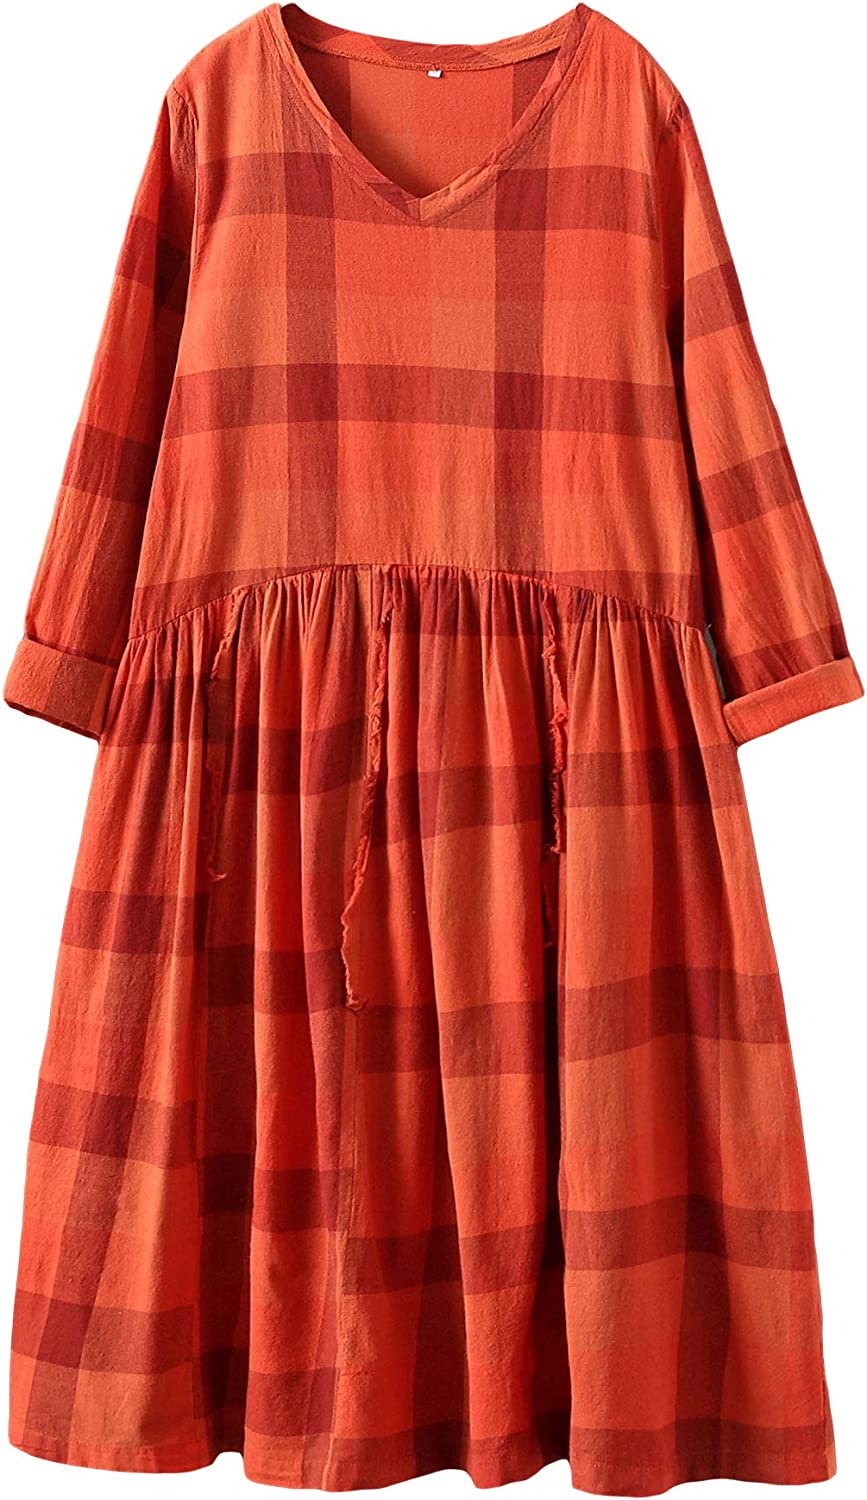 Mordenmiss Women's Plaid Midi Dress Sleeve Shi Long Excellent Online limited product Cotton Swing